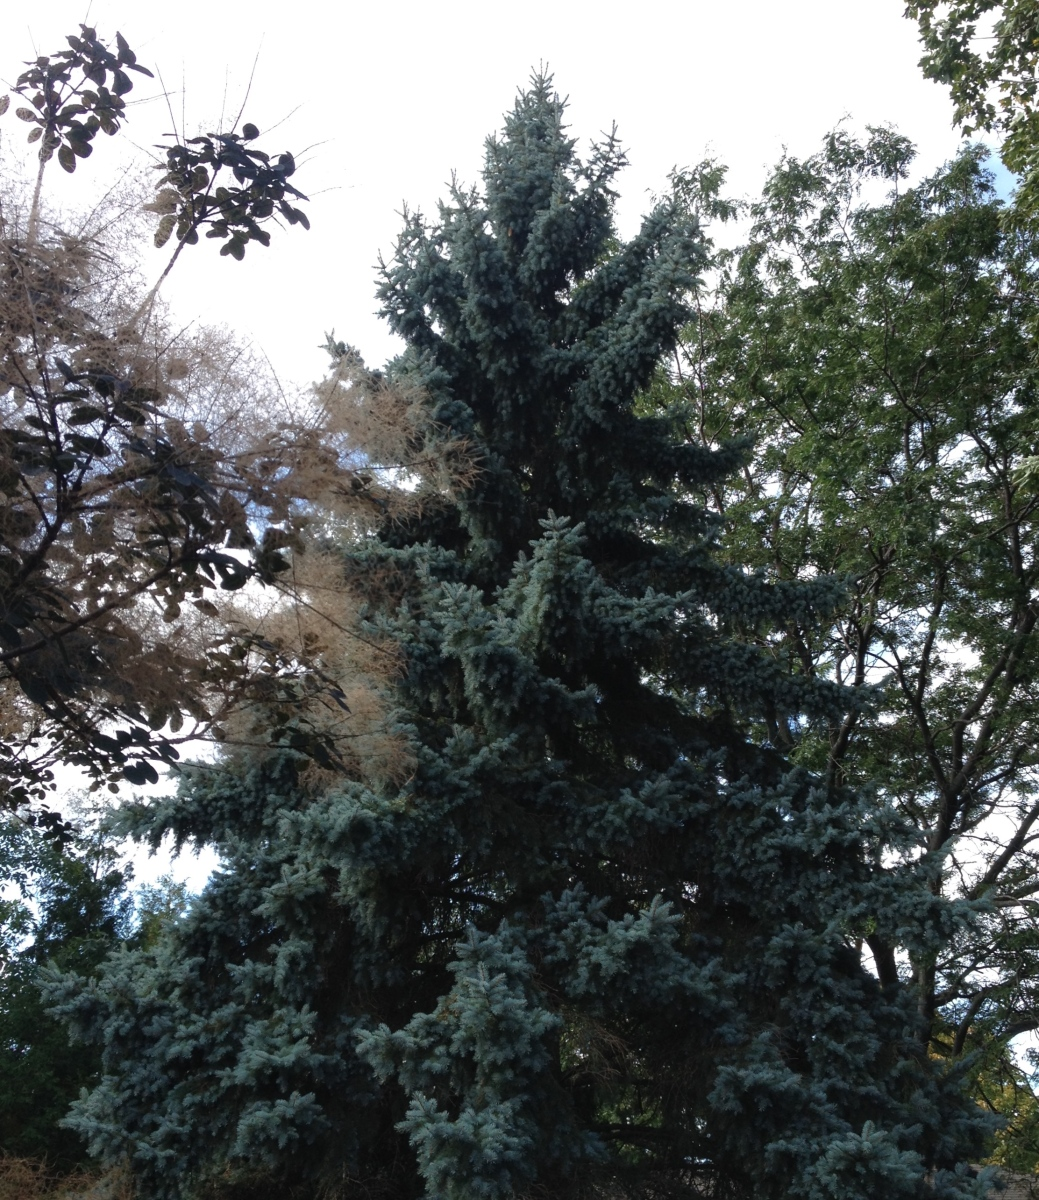 A towering Colorado Spruce showing its distinctive colouring